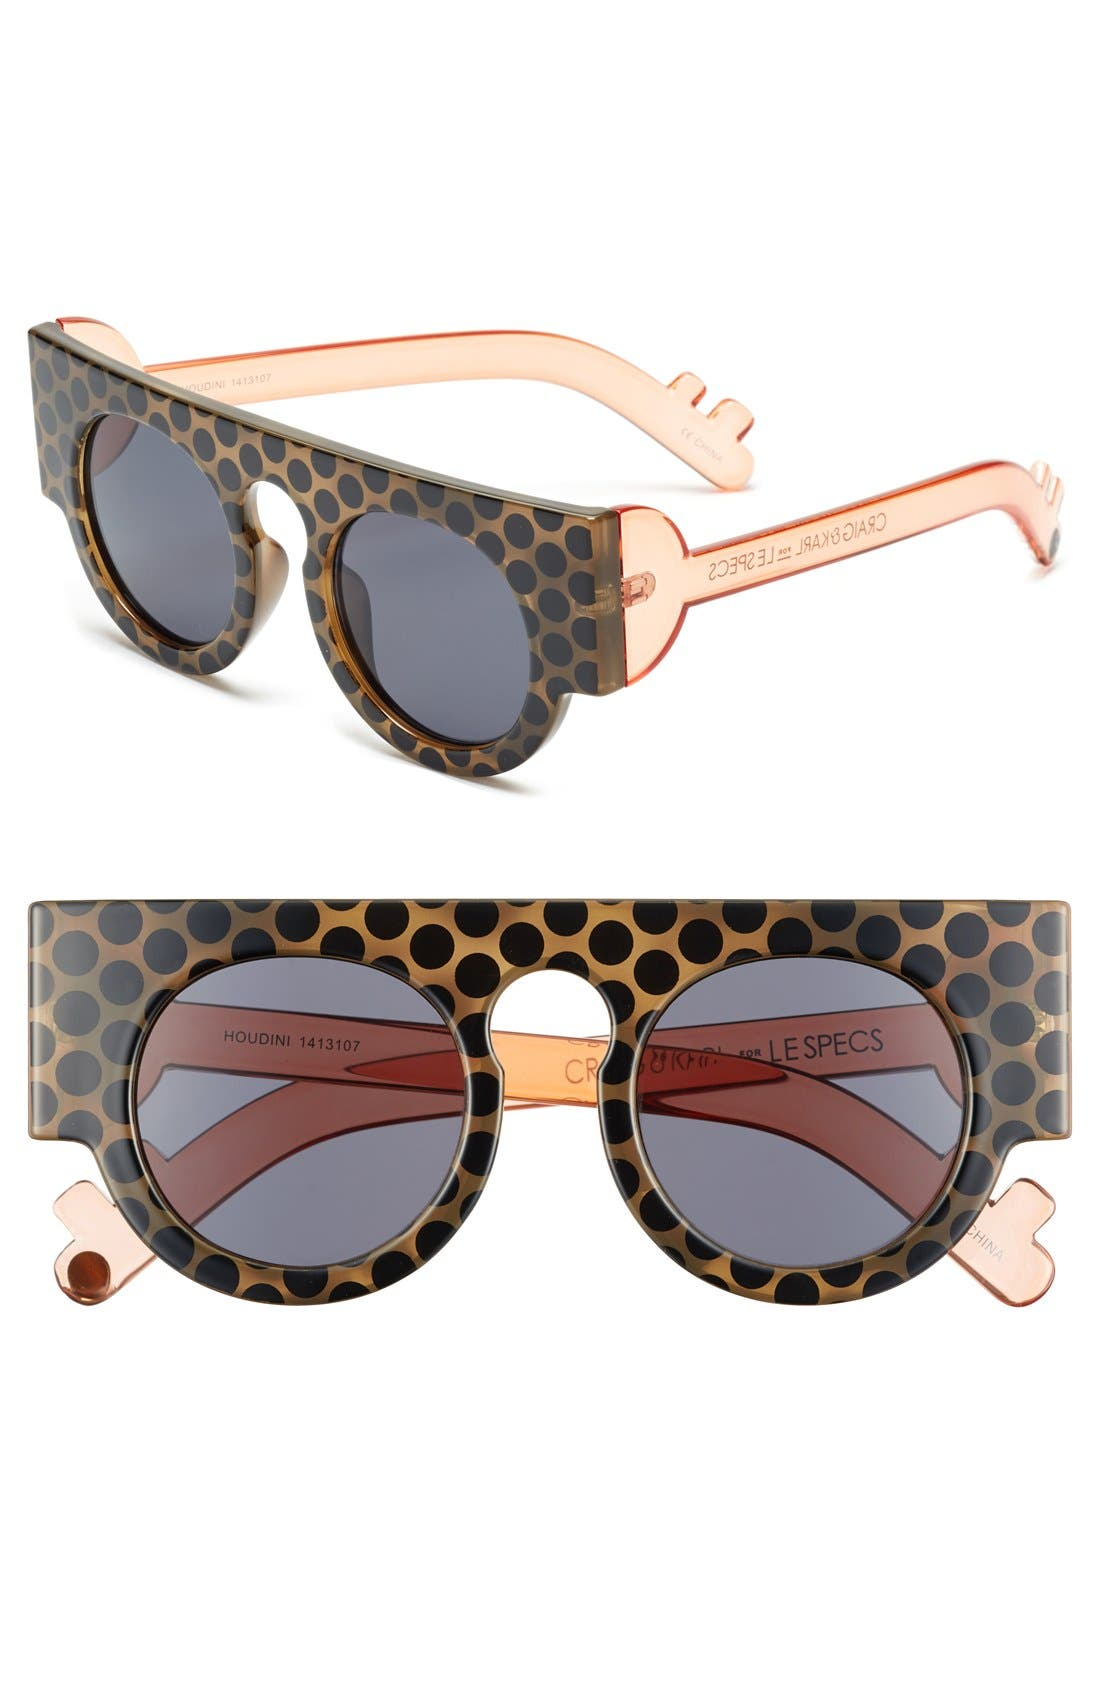 Main Image - Craig and Karl x Le Specs 'Houdini' 45mm Sunglasses